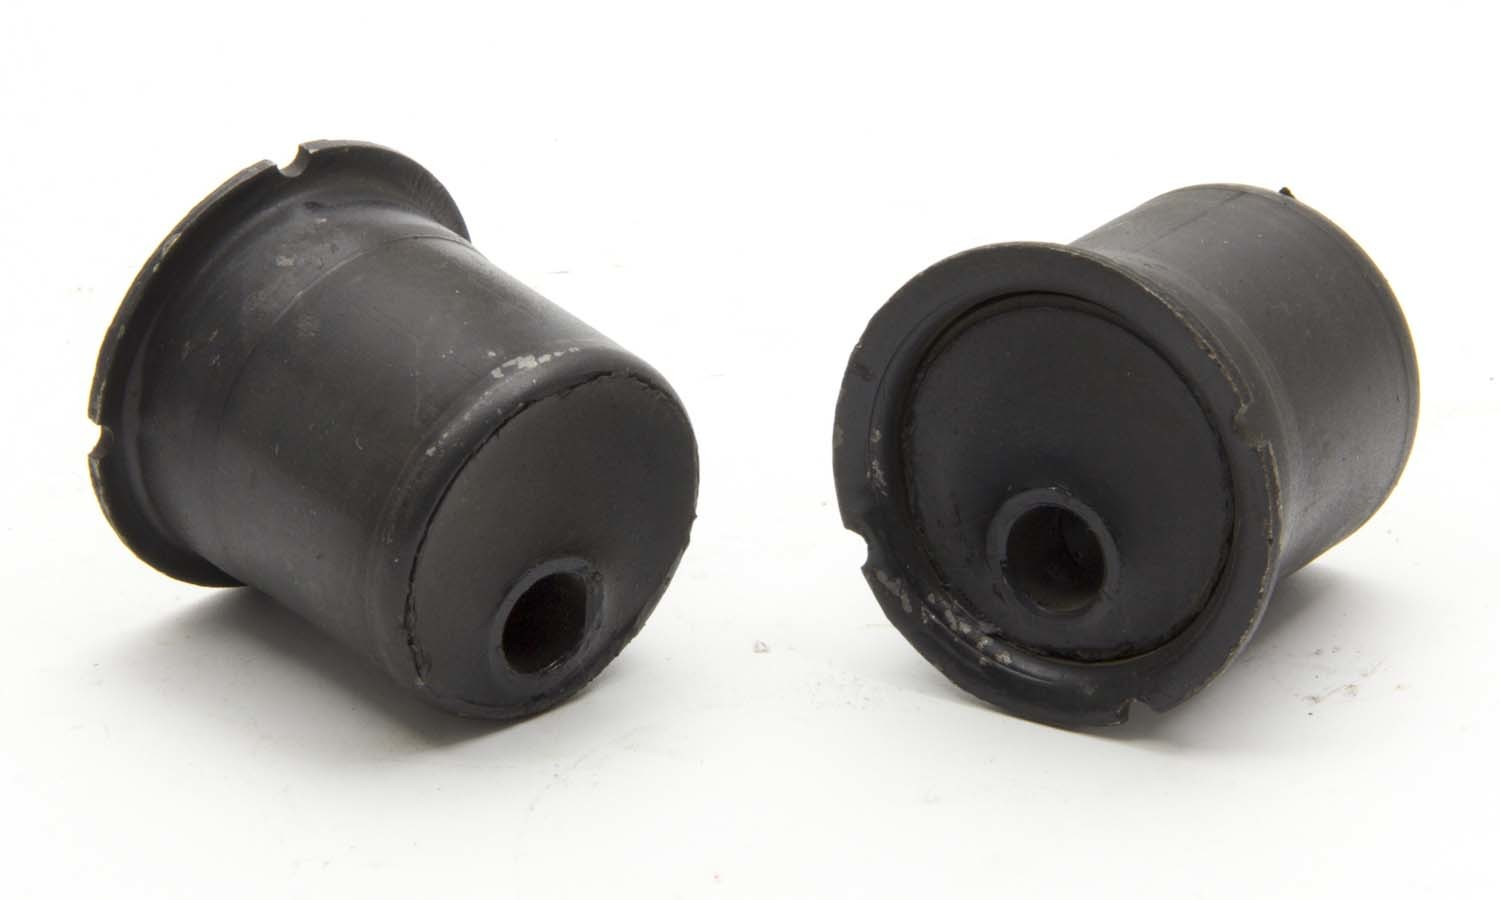 AFCO Racing Products 20090 Trailing Arm Bushing, 1/4 in Offset, Polyurethane, GM 1965-88 Midsize, Pair